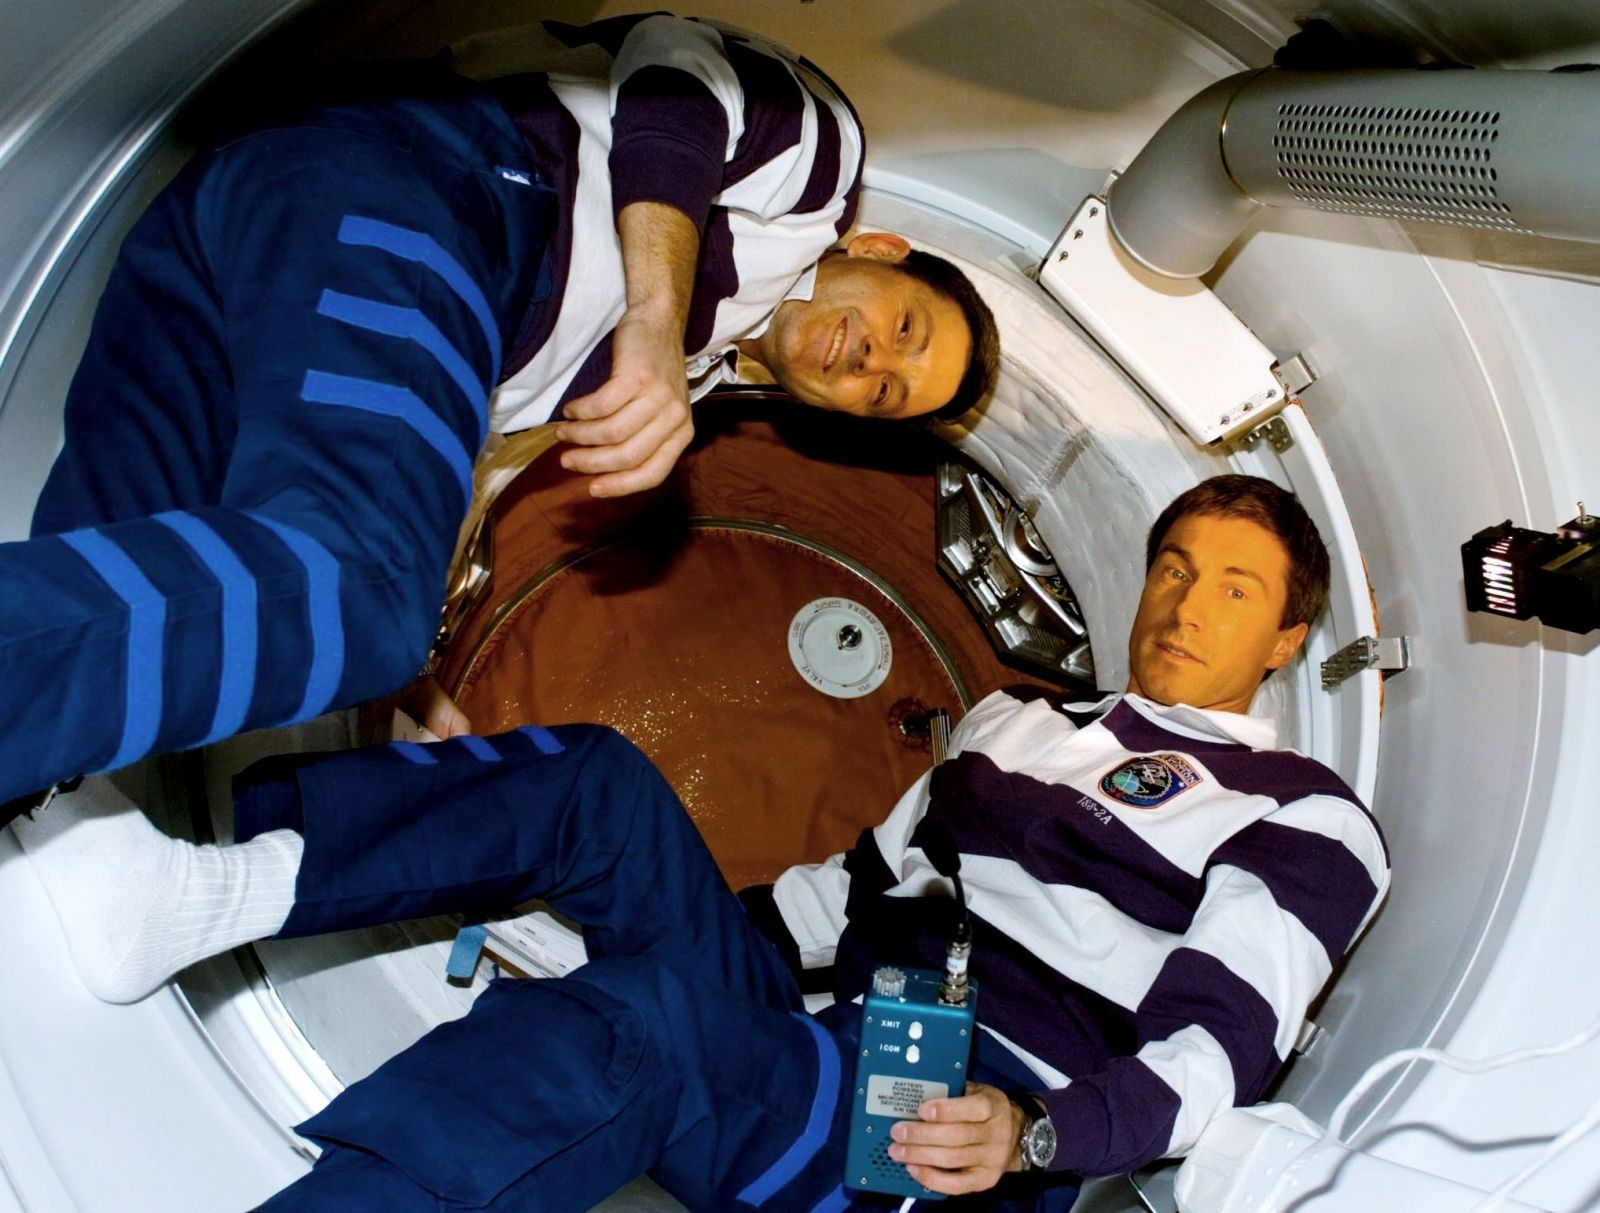 NASA astronaut Bob Cabana, left and Russian cosmonaut Sergei Krikalev prepare to open the hatch to the Zarya module during STS-88. Photo Credit: NASA